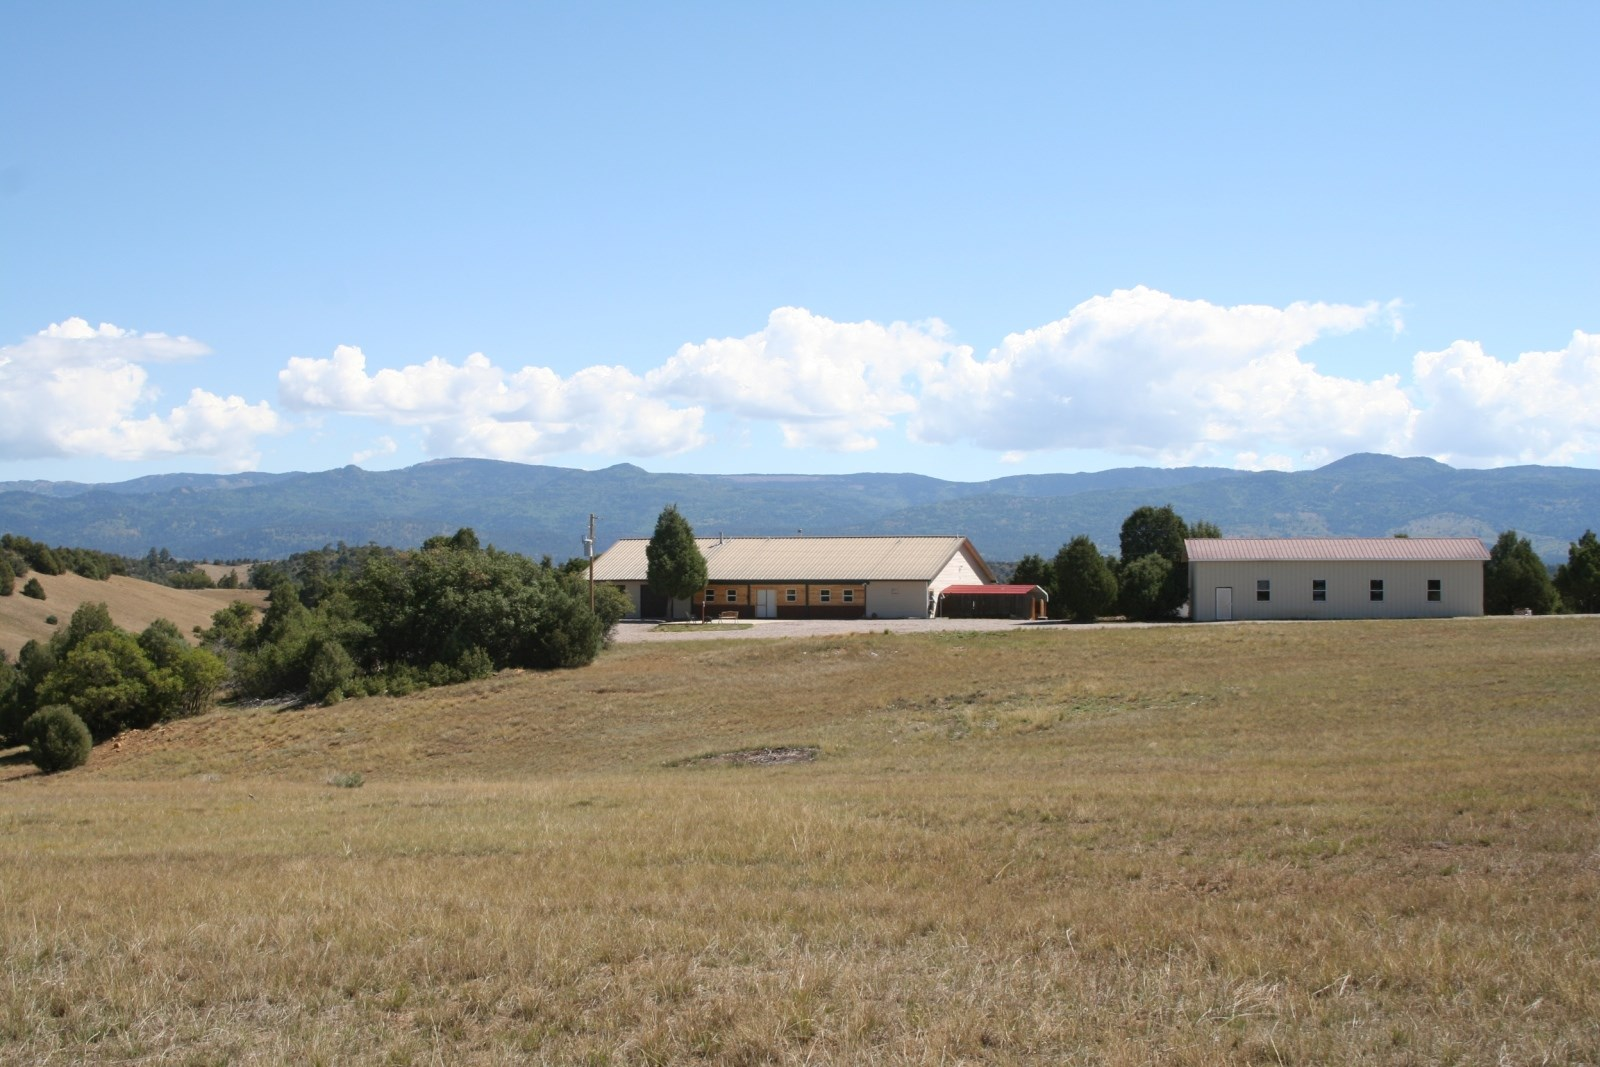 Home and Land for Sale West of Chama NM recently remodeled